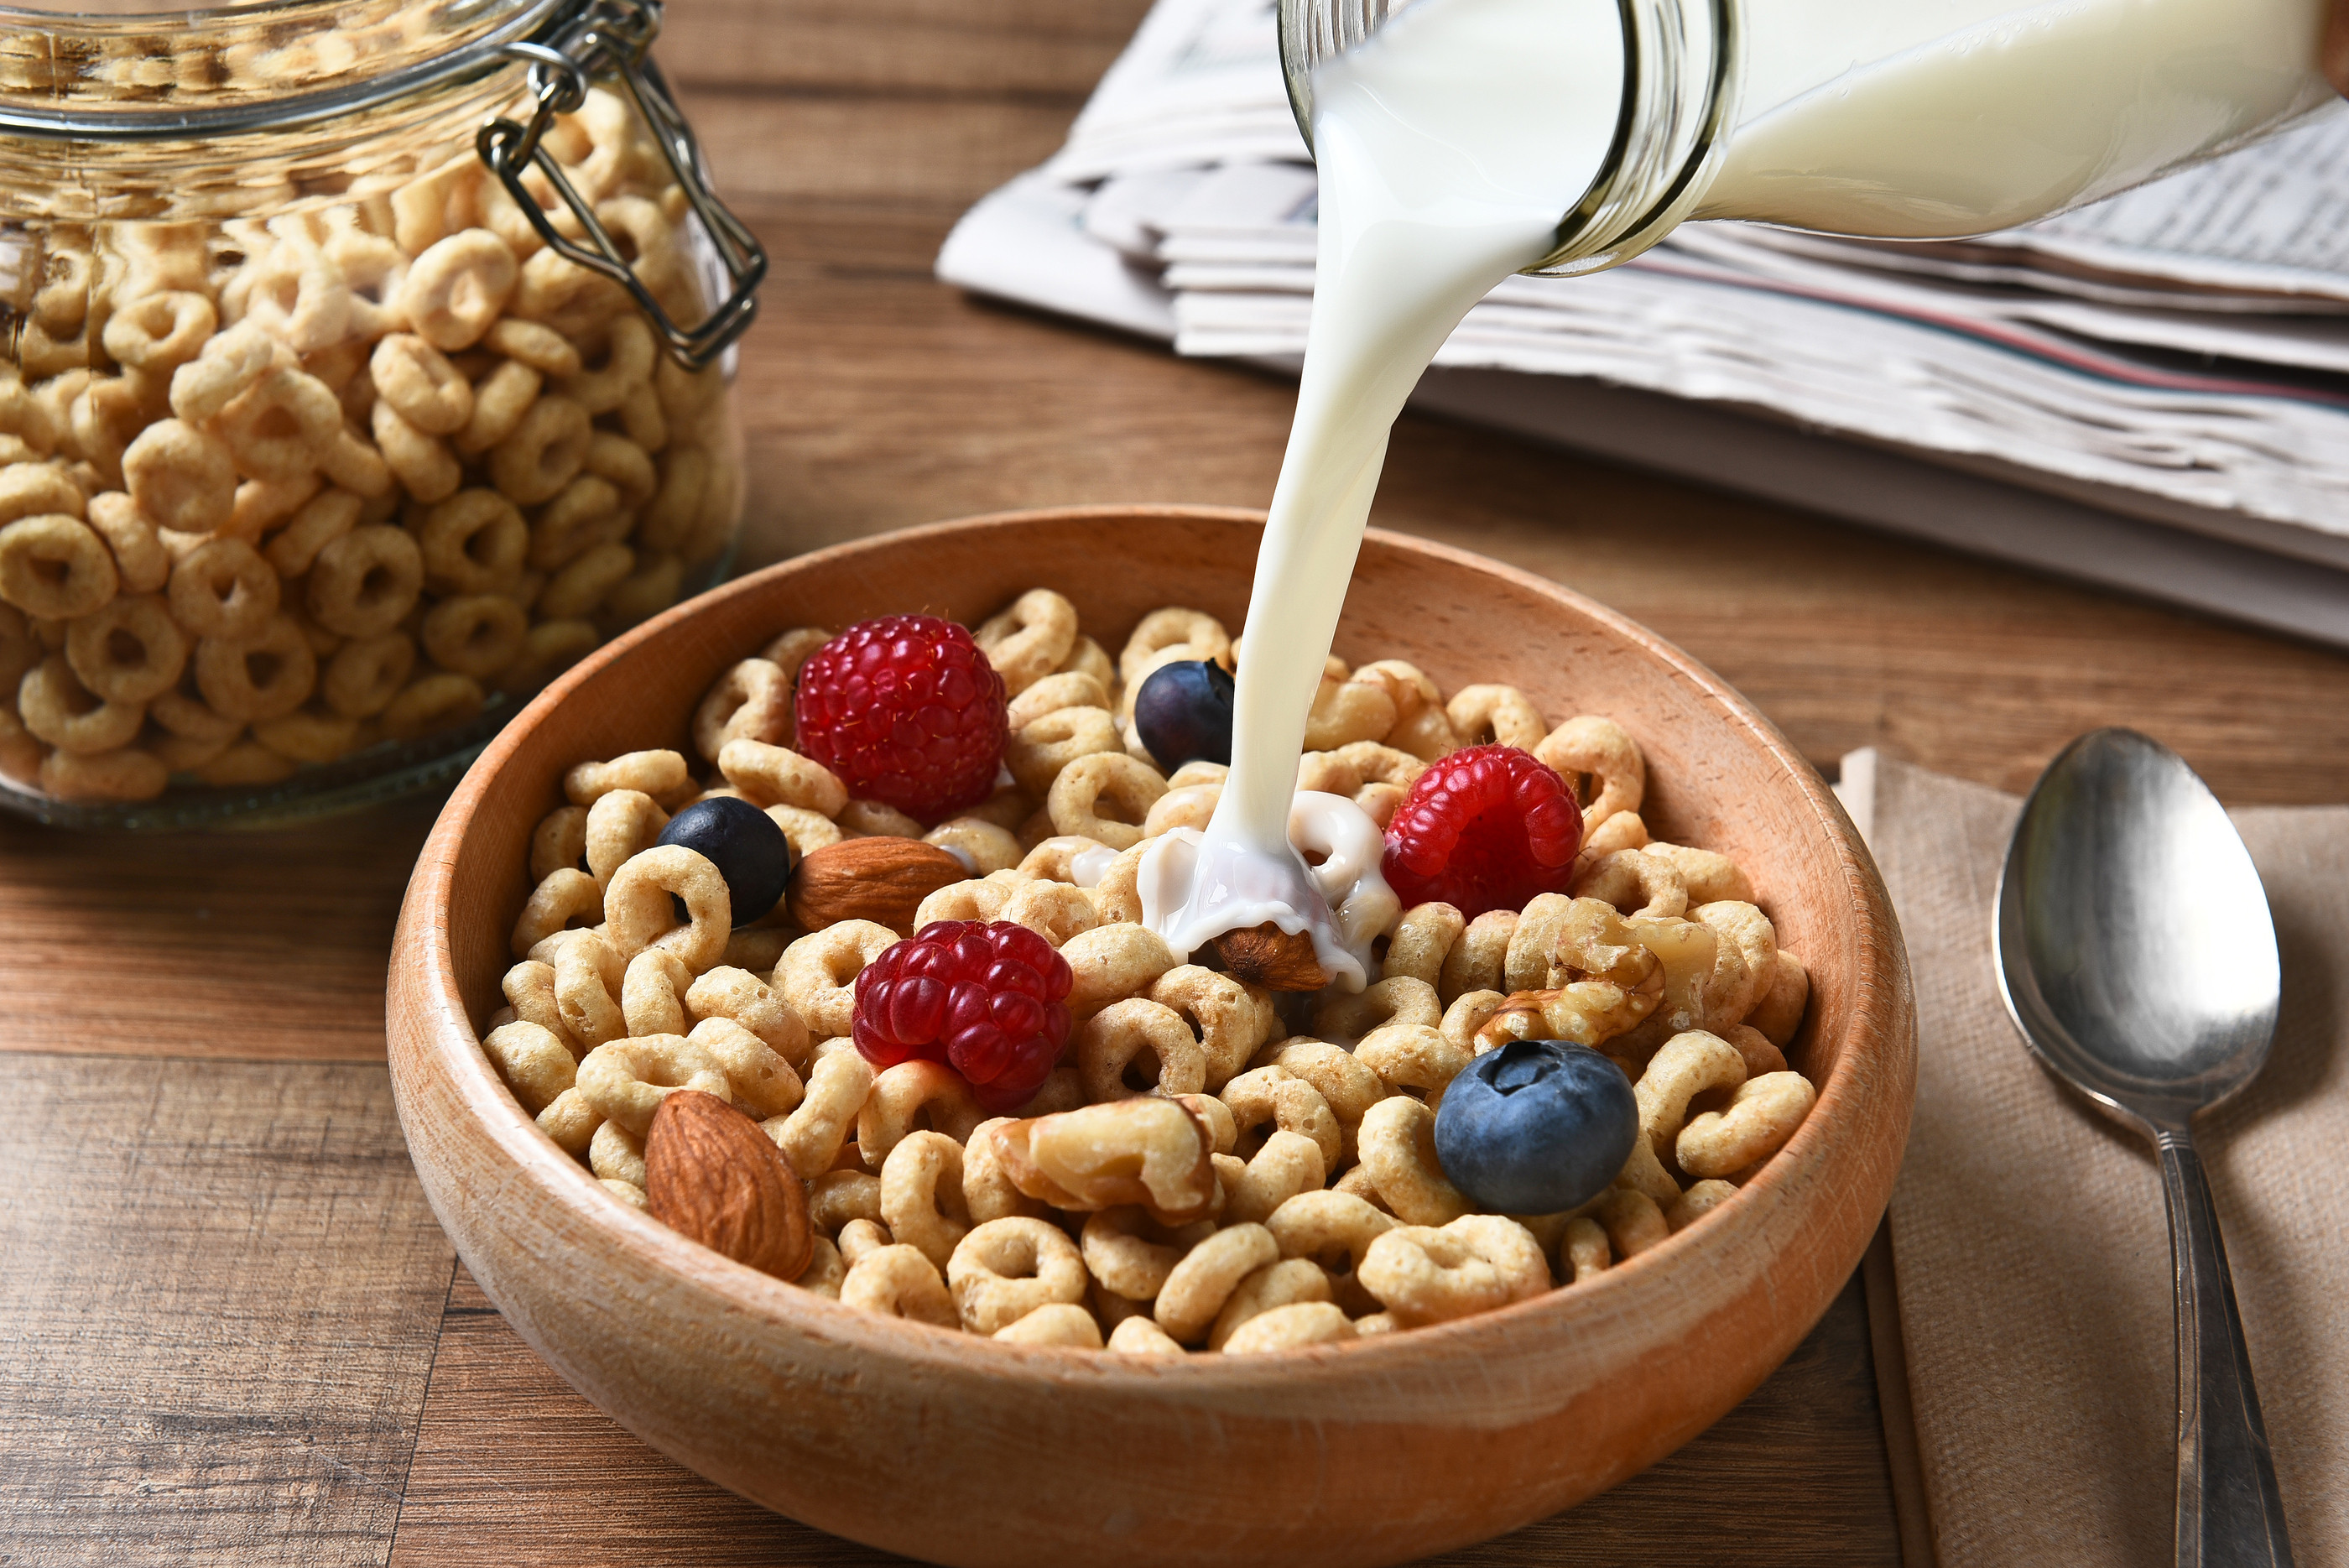 Popular Breakfast Cereals  The Fascinating Ways in Which Breakfast Cereals are Made